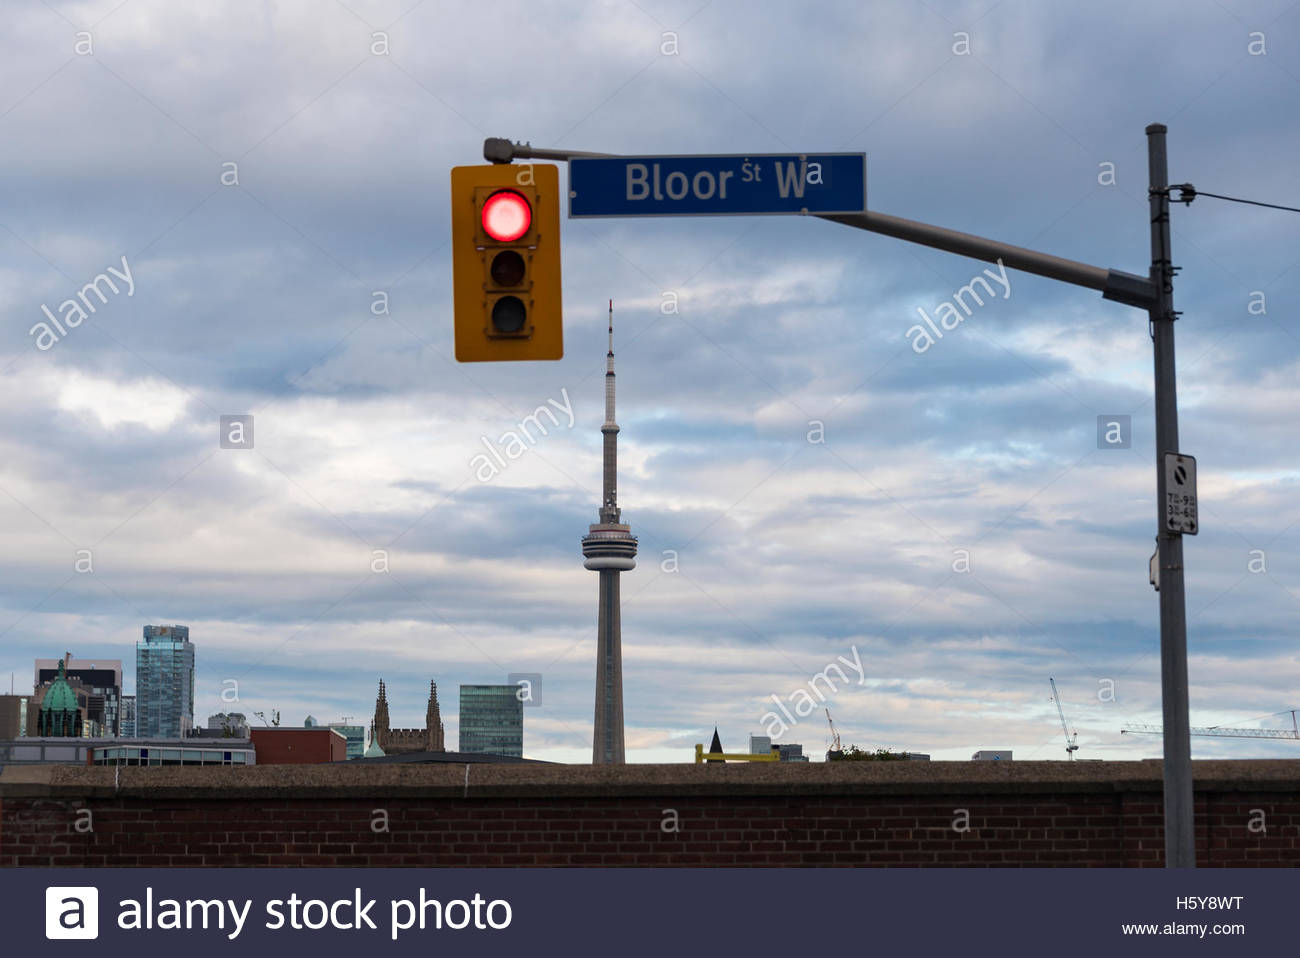 Traffic signal at Bloor street west with CN Tower in the background. - Stock Image